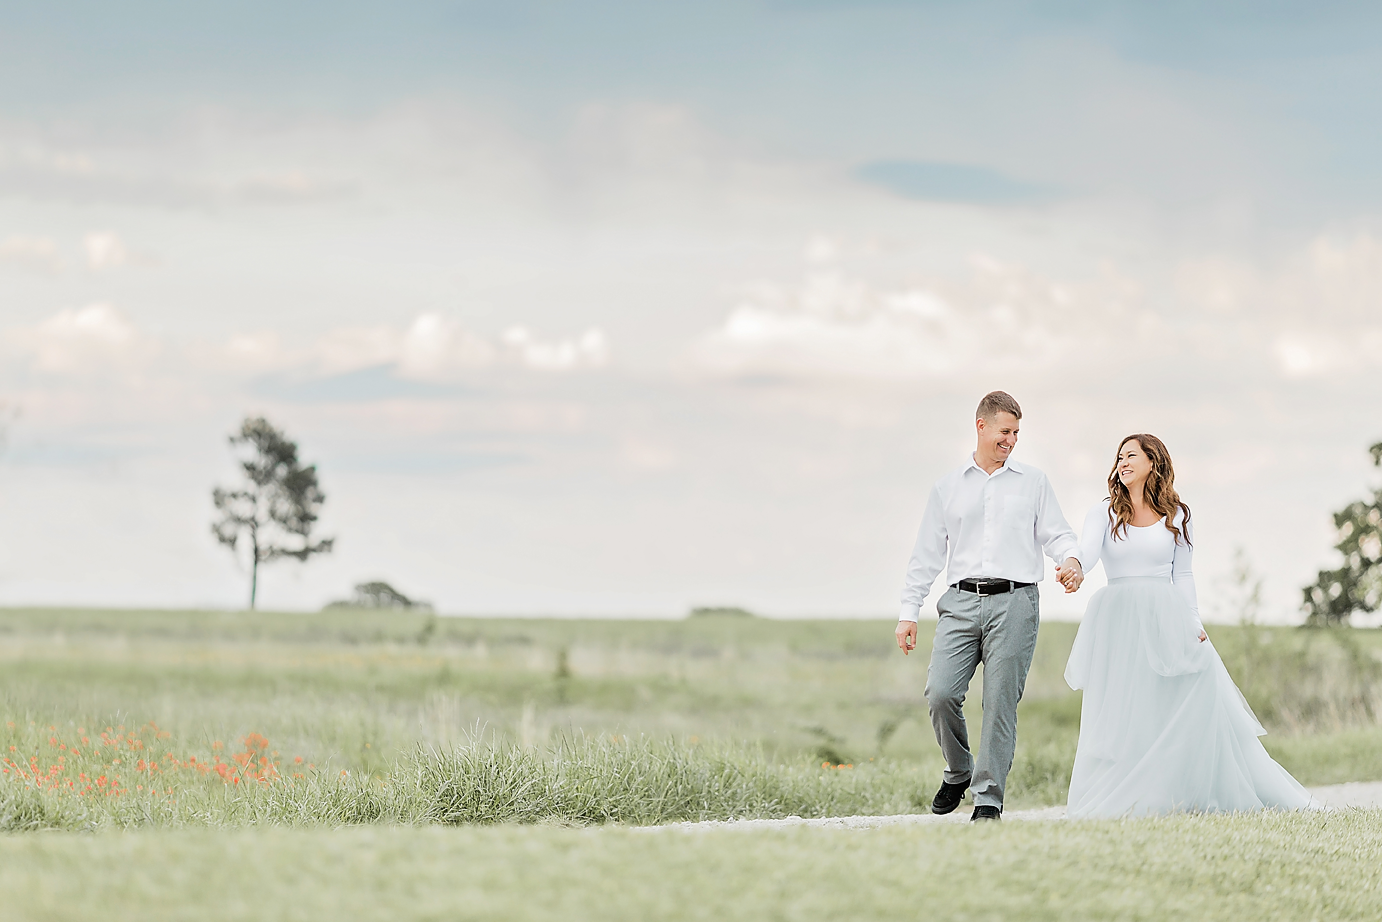 Dallas Wedding Photographer Flower Mound anniversary Photographer Kim Brett Texas Ranch Kate Marie Portraiture 12.png